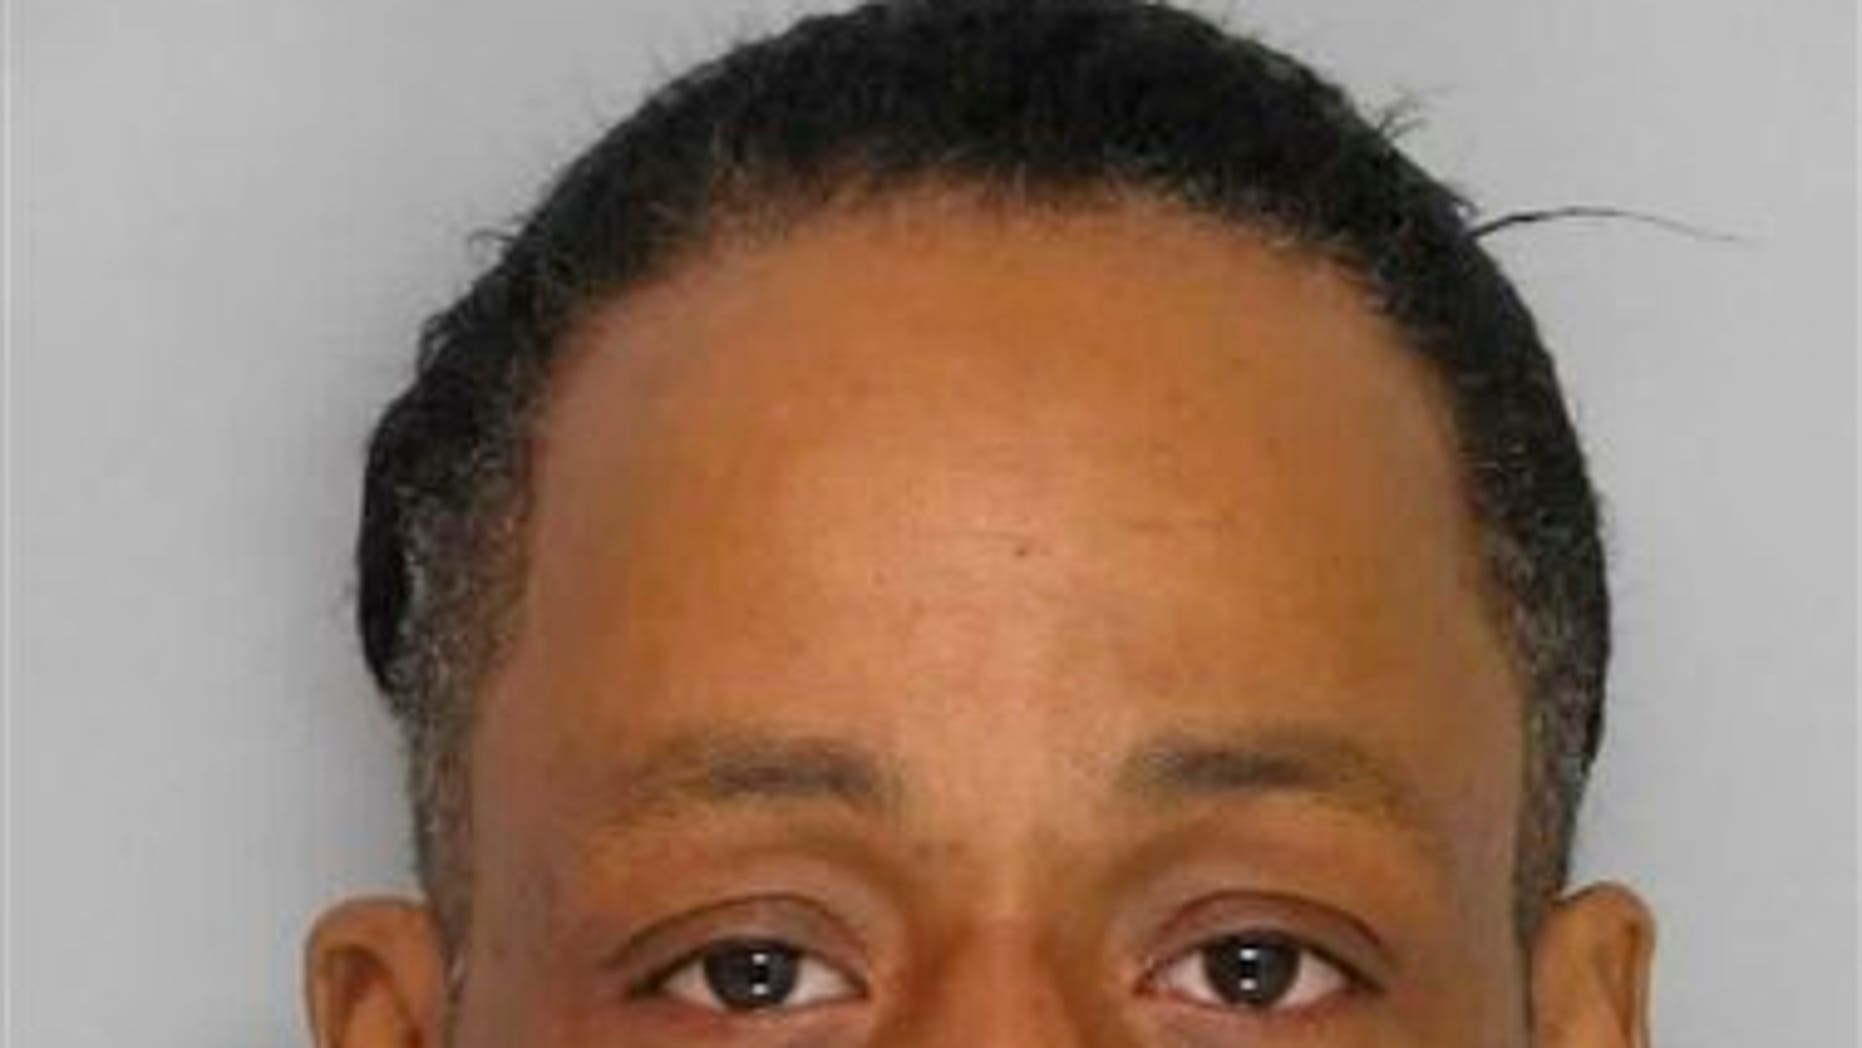 This police booking photo released  by the Gainesville Police Department on Monday, March 1, 2016 shows comedian Katt Williams after being arrested following an alleged altercation with an employee of a pool supply business.